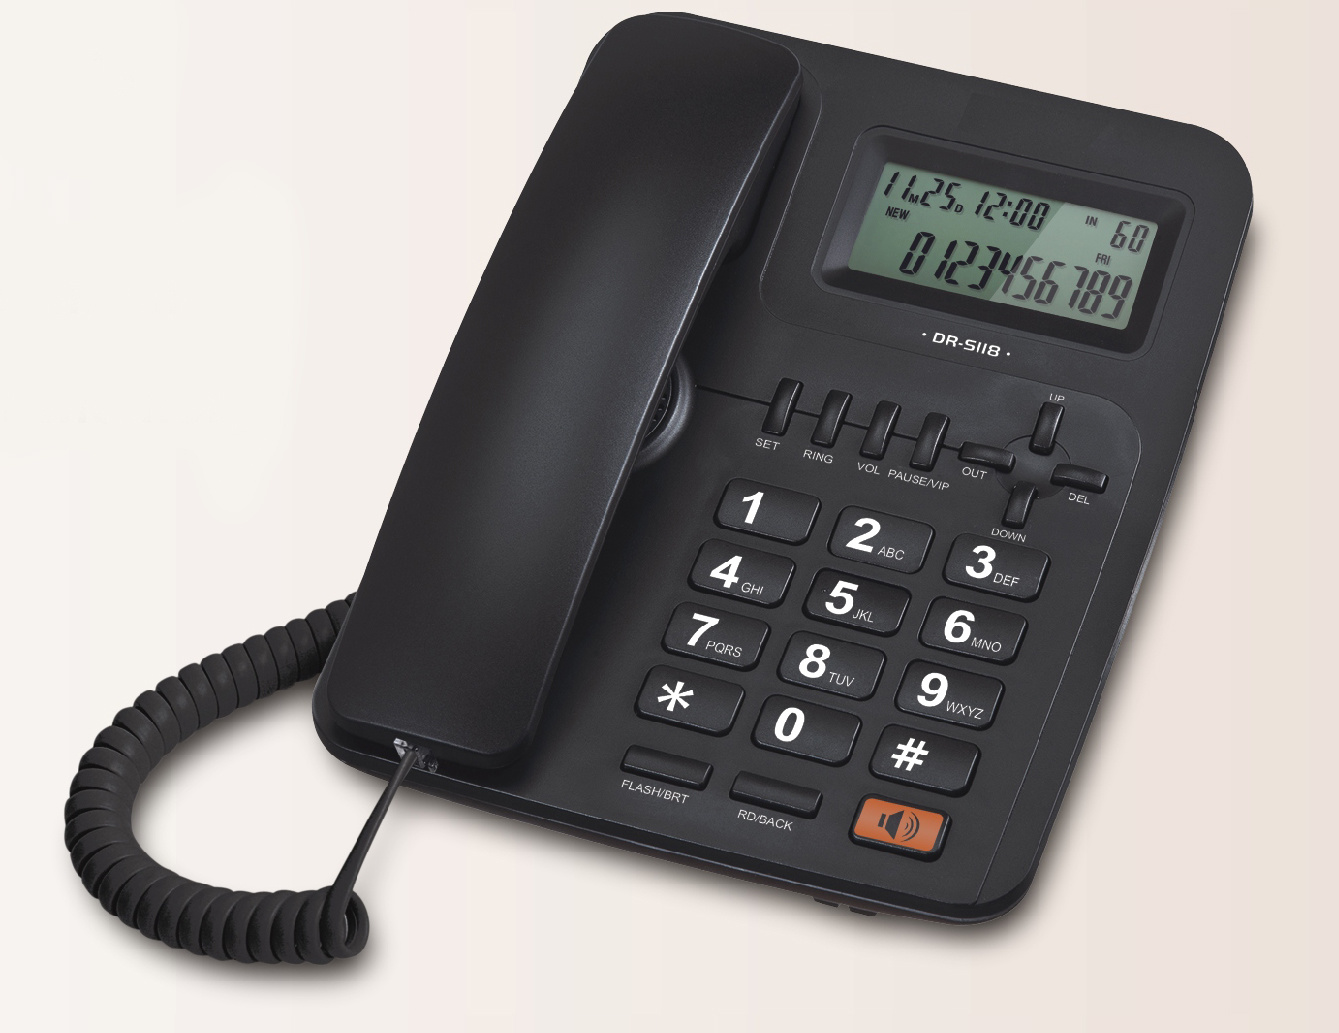 Caller ID Telephone, Corded Phone, Telephone, Office Phone, Landline Phone, Landline Telephone